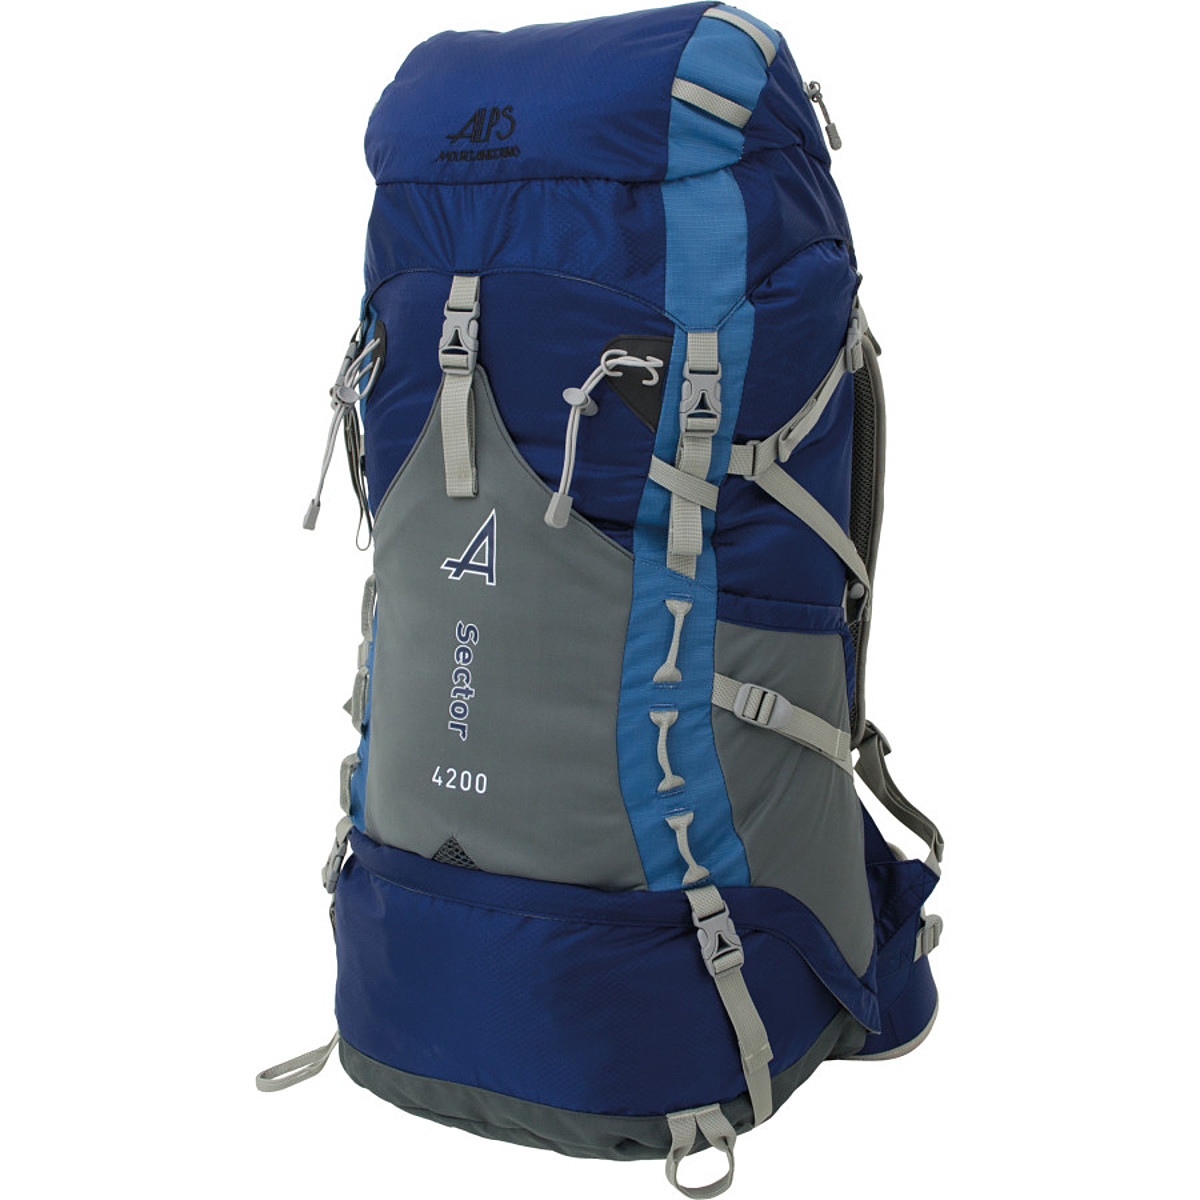 ALPS Mountaineering Sector 4200